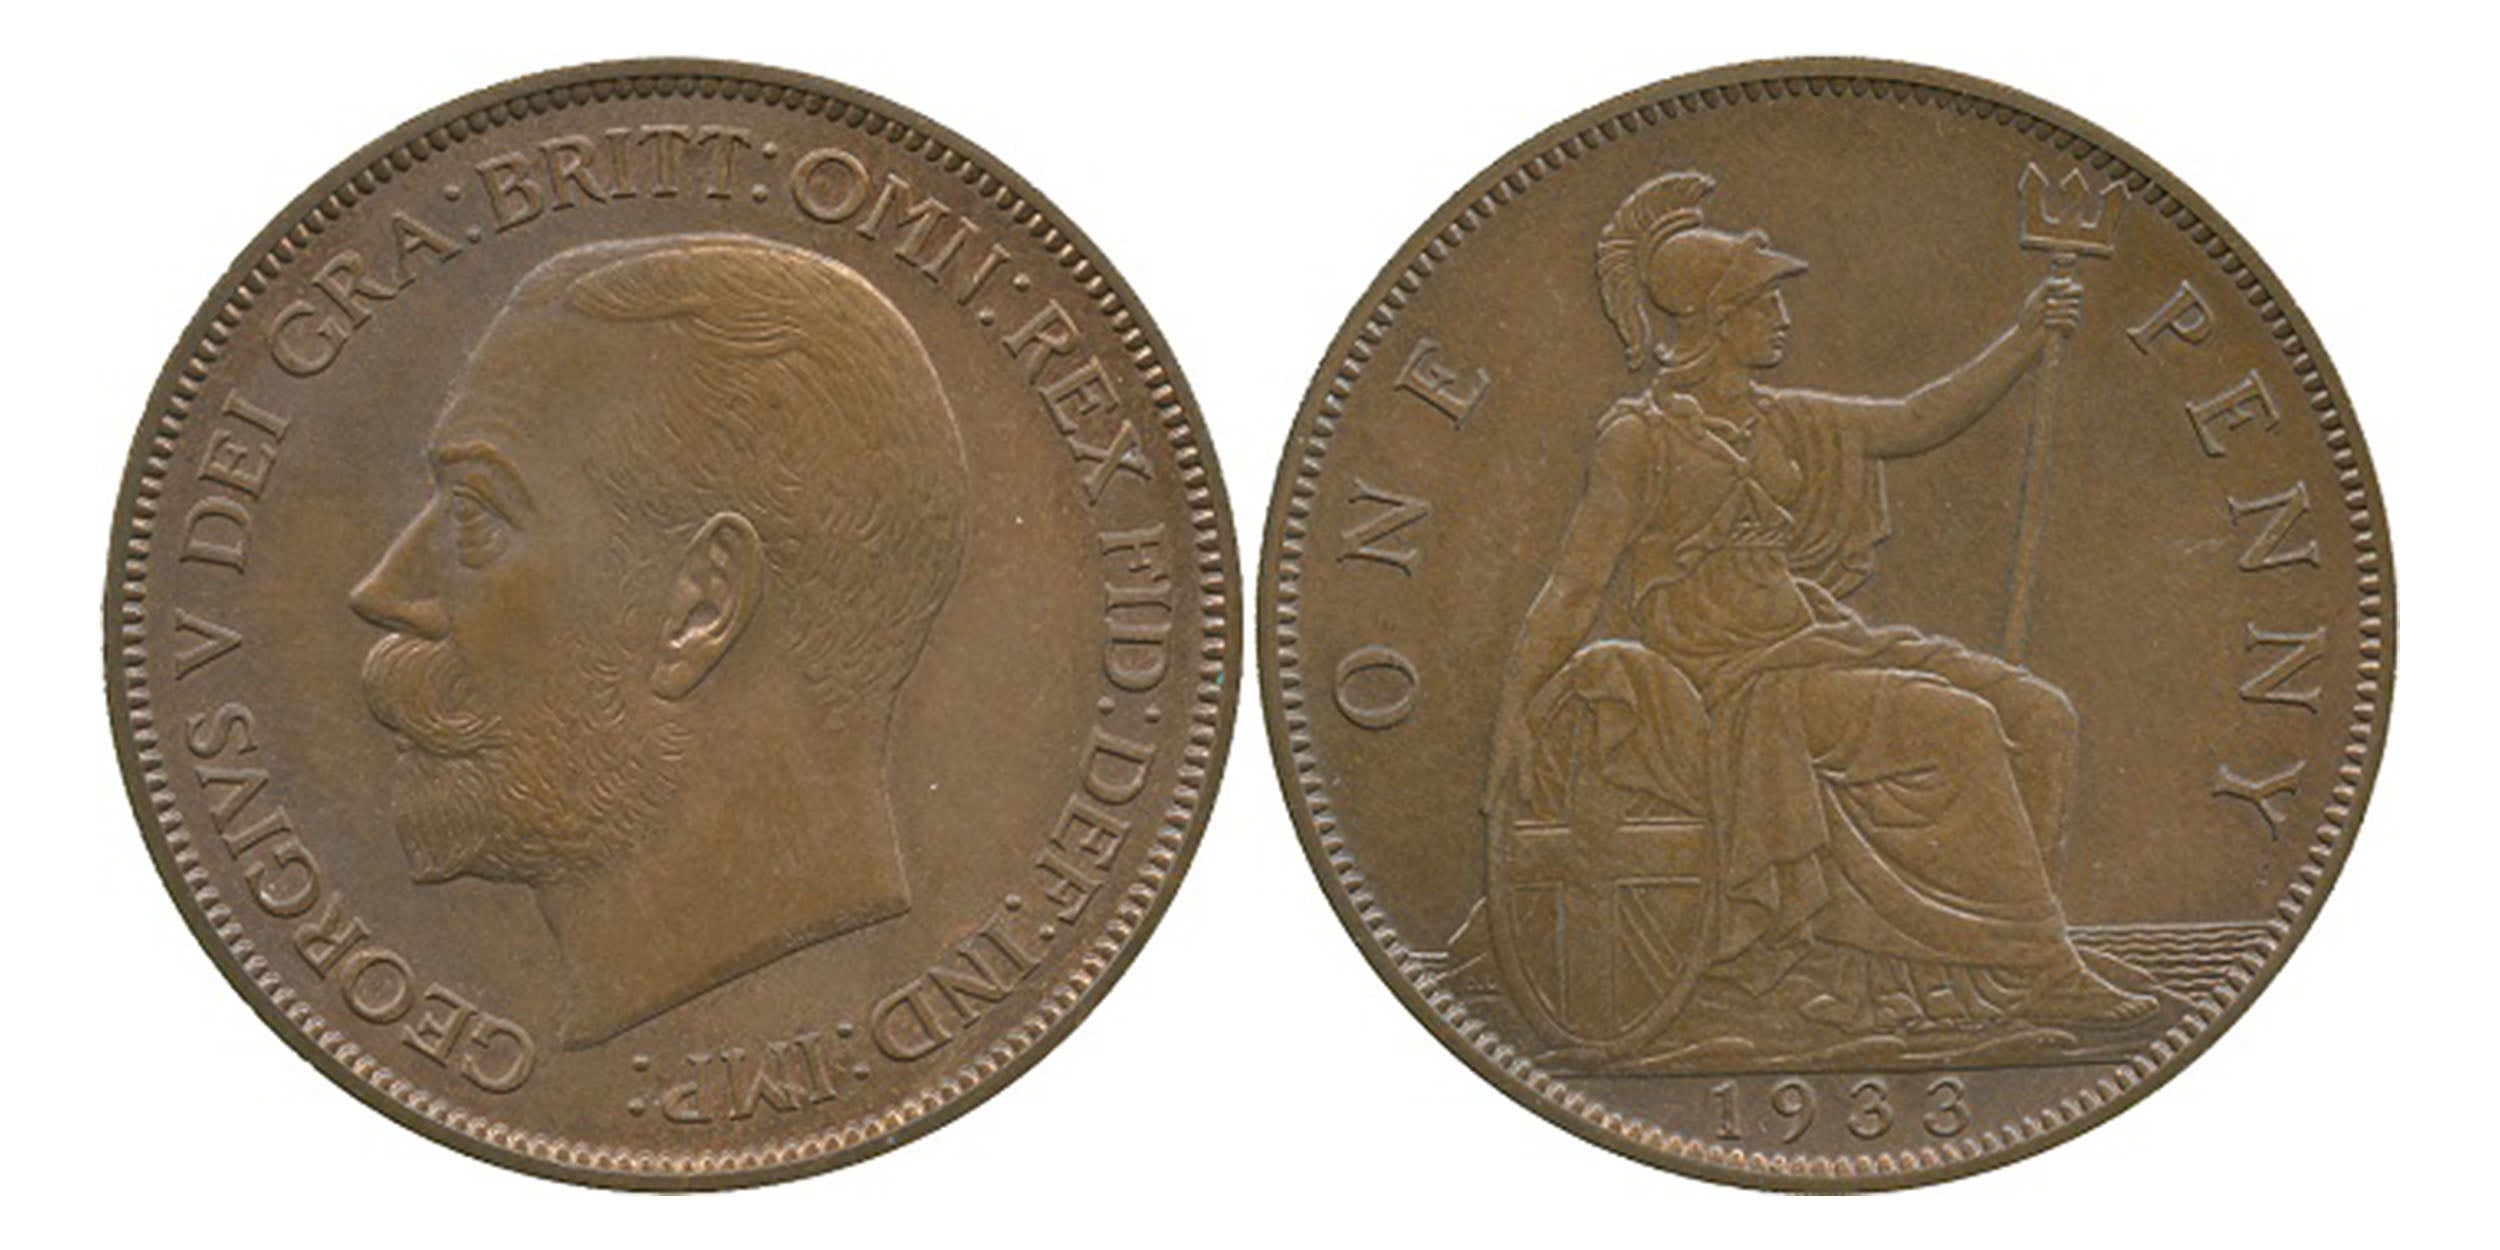 Penny sells for £72,000 and is now the most expensive copper